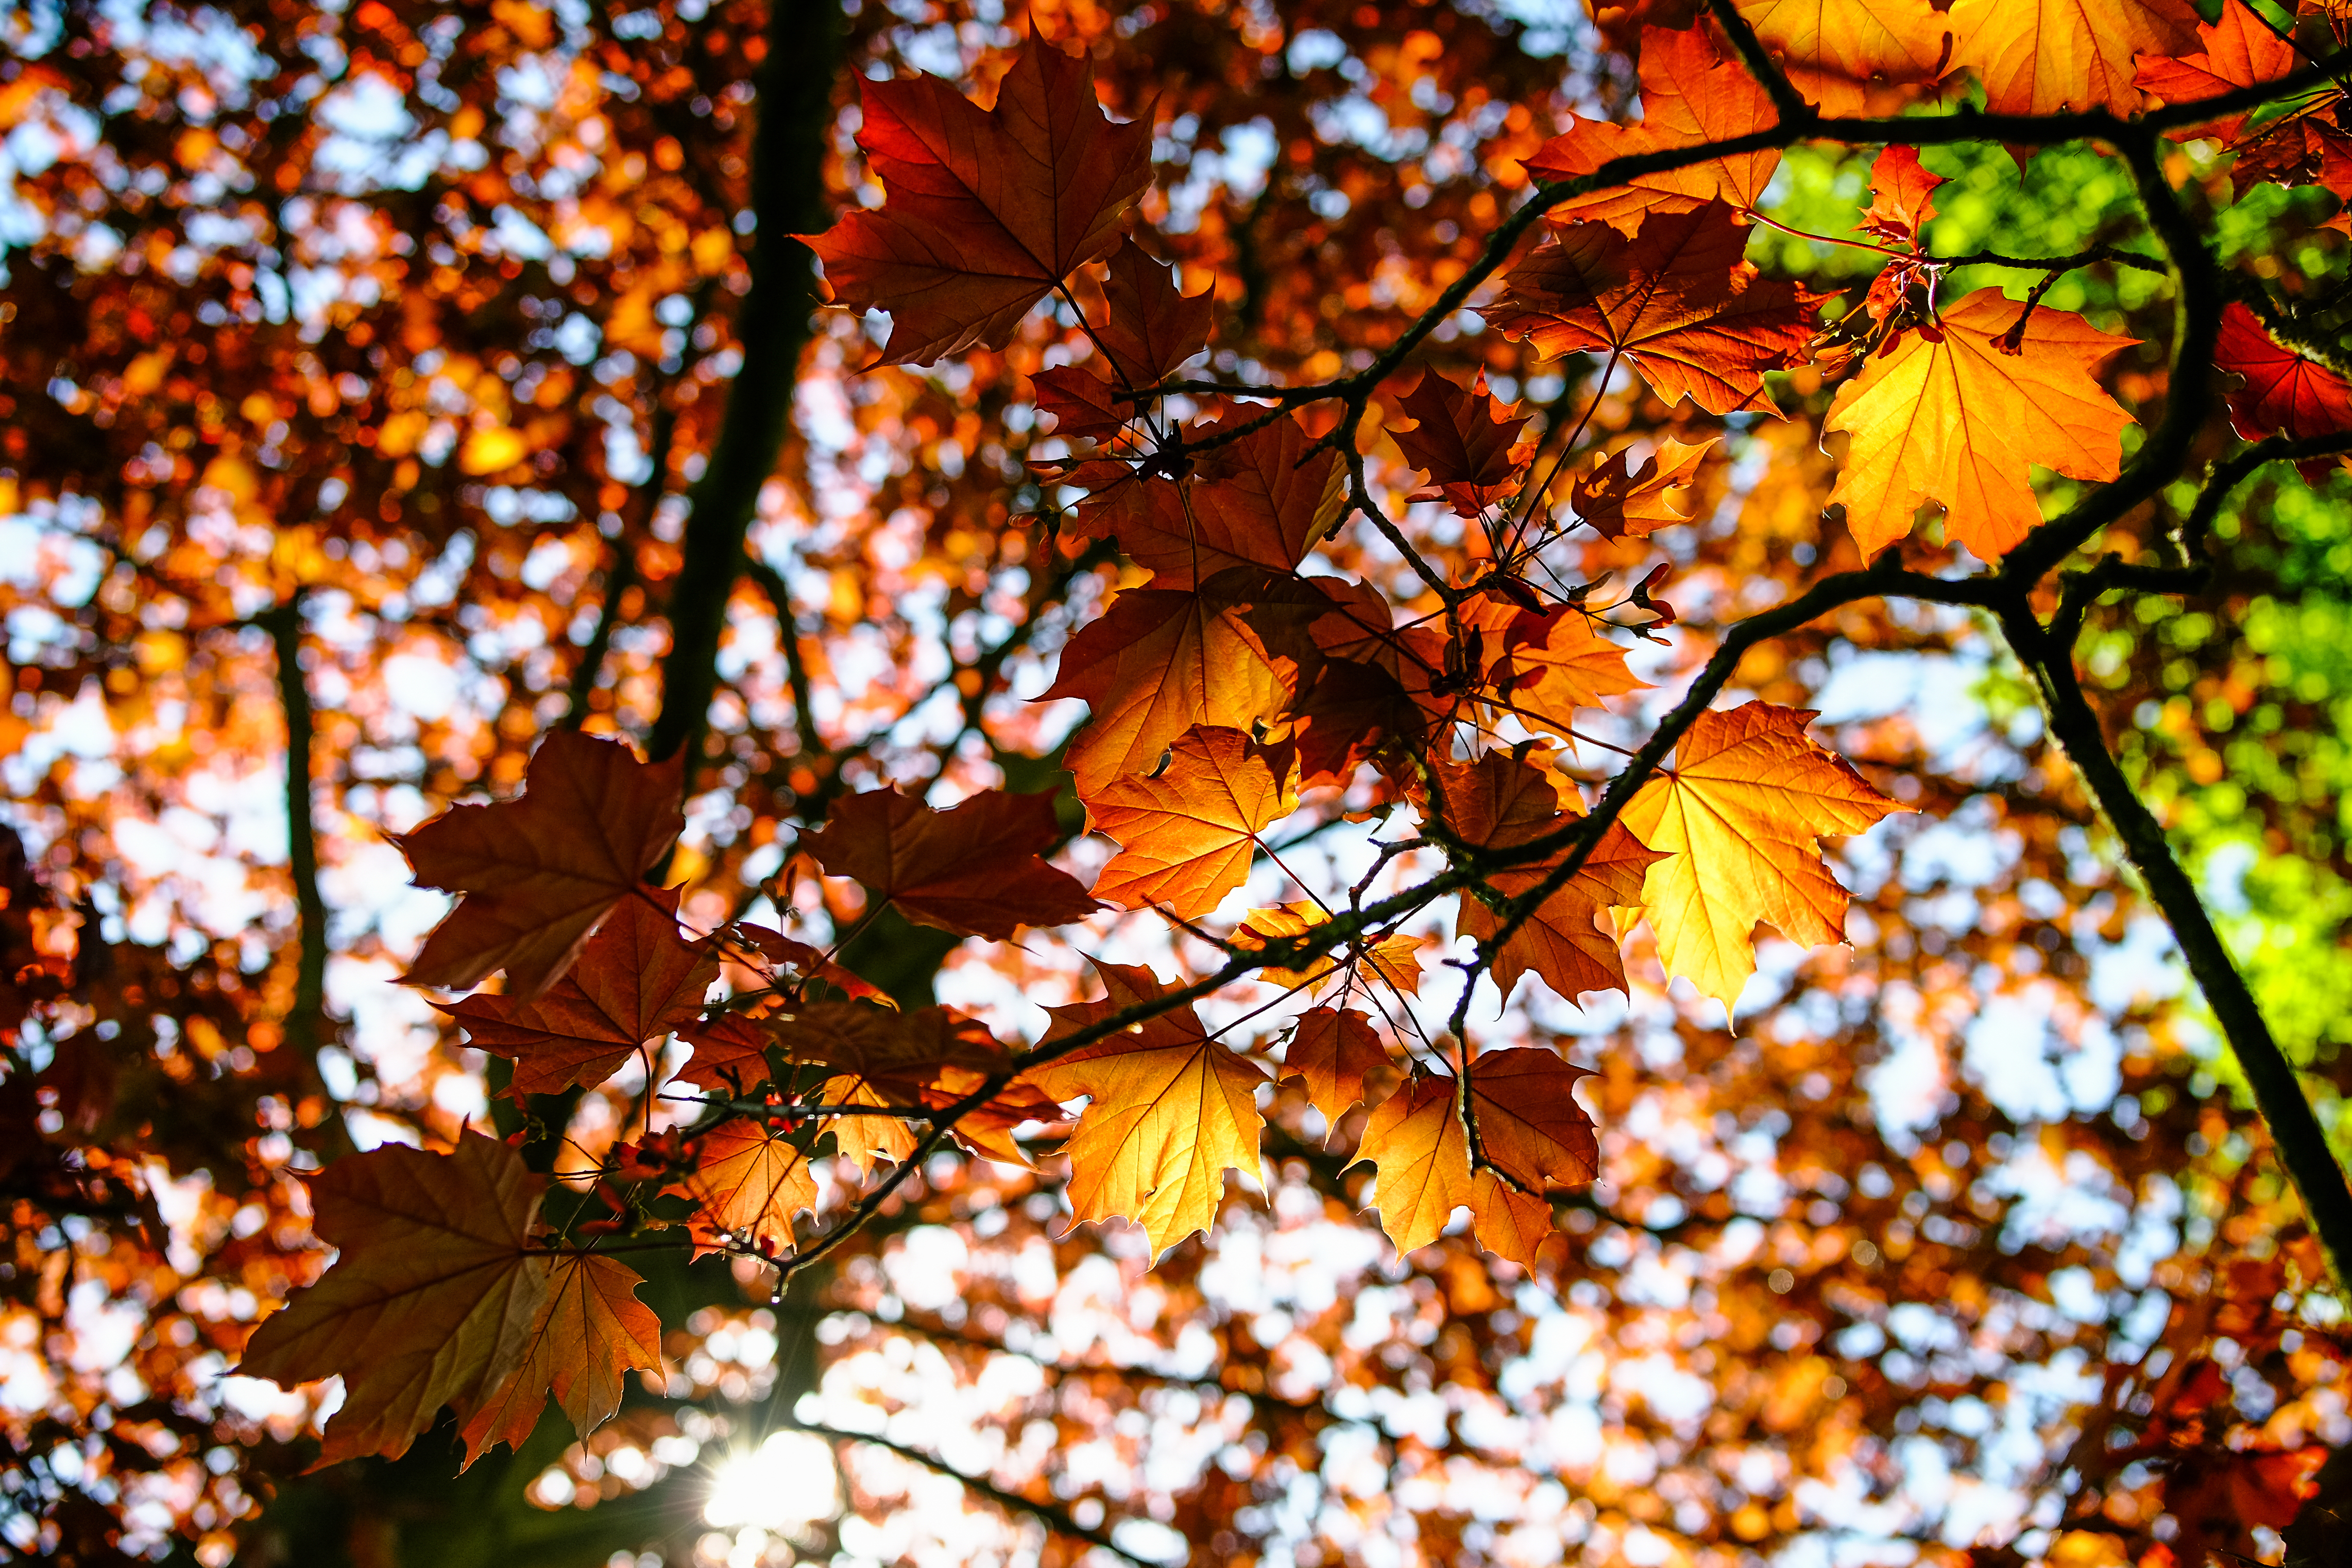 87399 download wallpaper Nature, Leaves, Maple, Branch, Beams, Rays screensavers and pictures for free